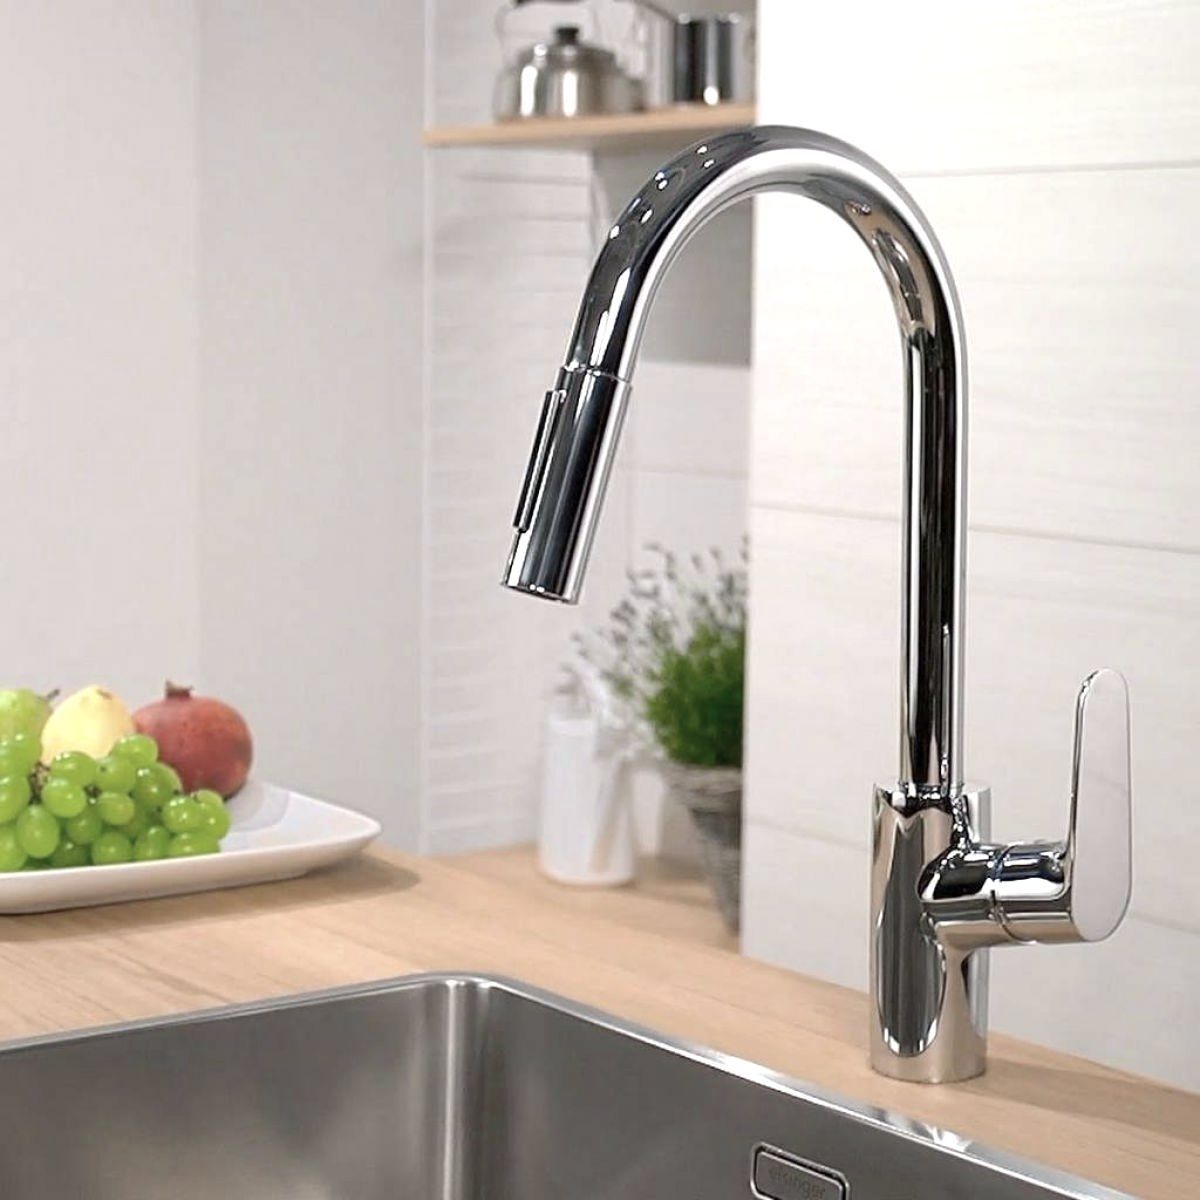 Hansgrohe Focus 240 Kitchen Mixer Tap, with Pull-out Spray : UK ...